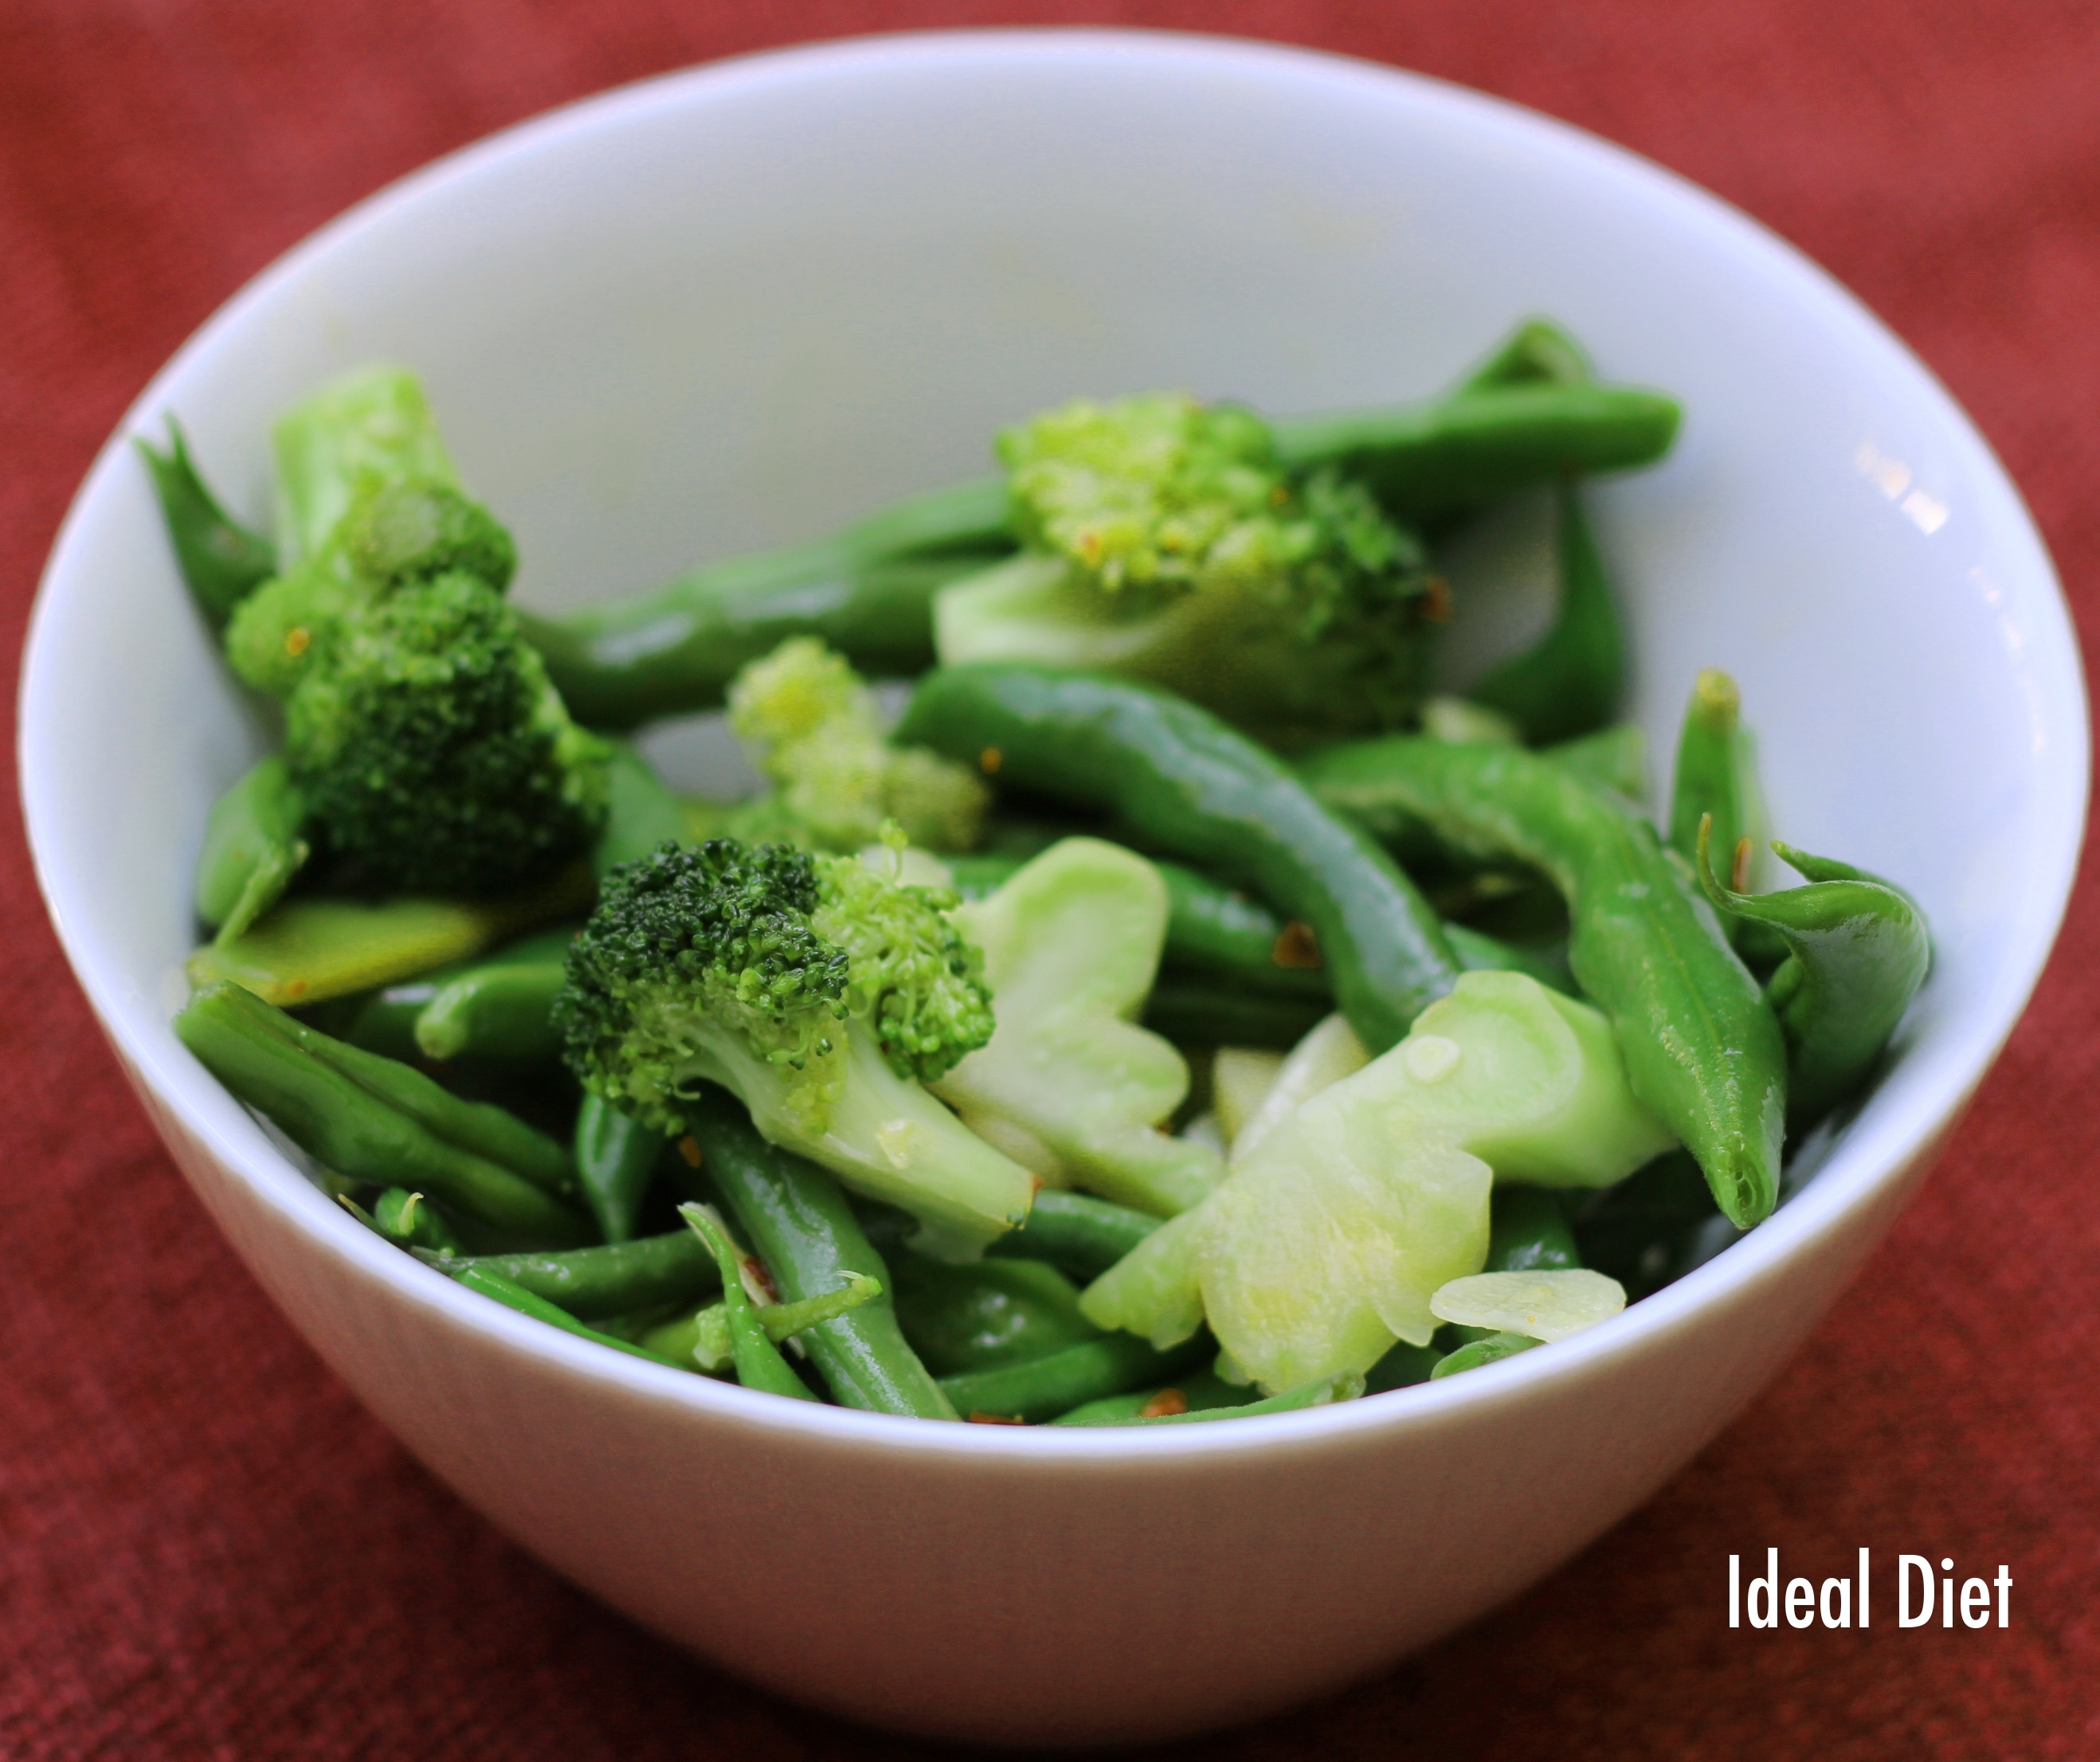 Ideal protein phase 4 sheet for Fish and broccoli diet